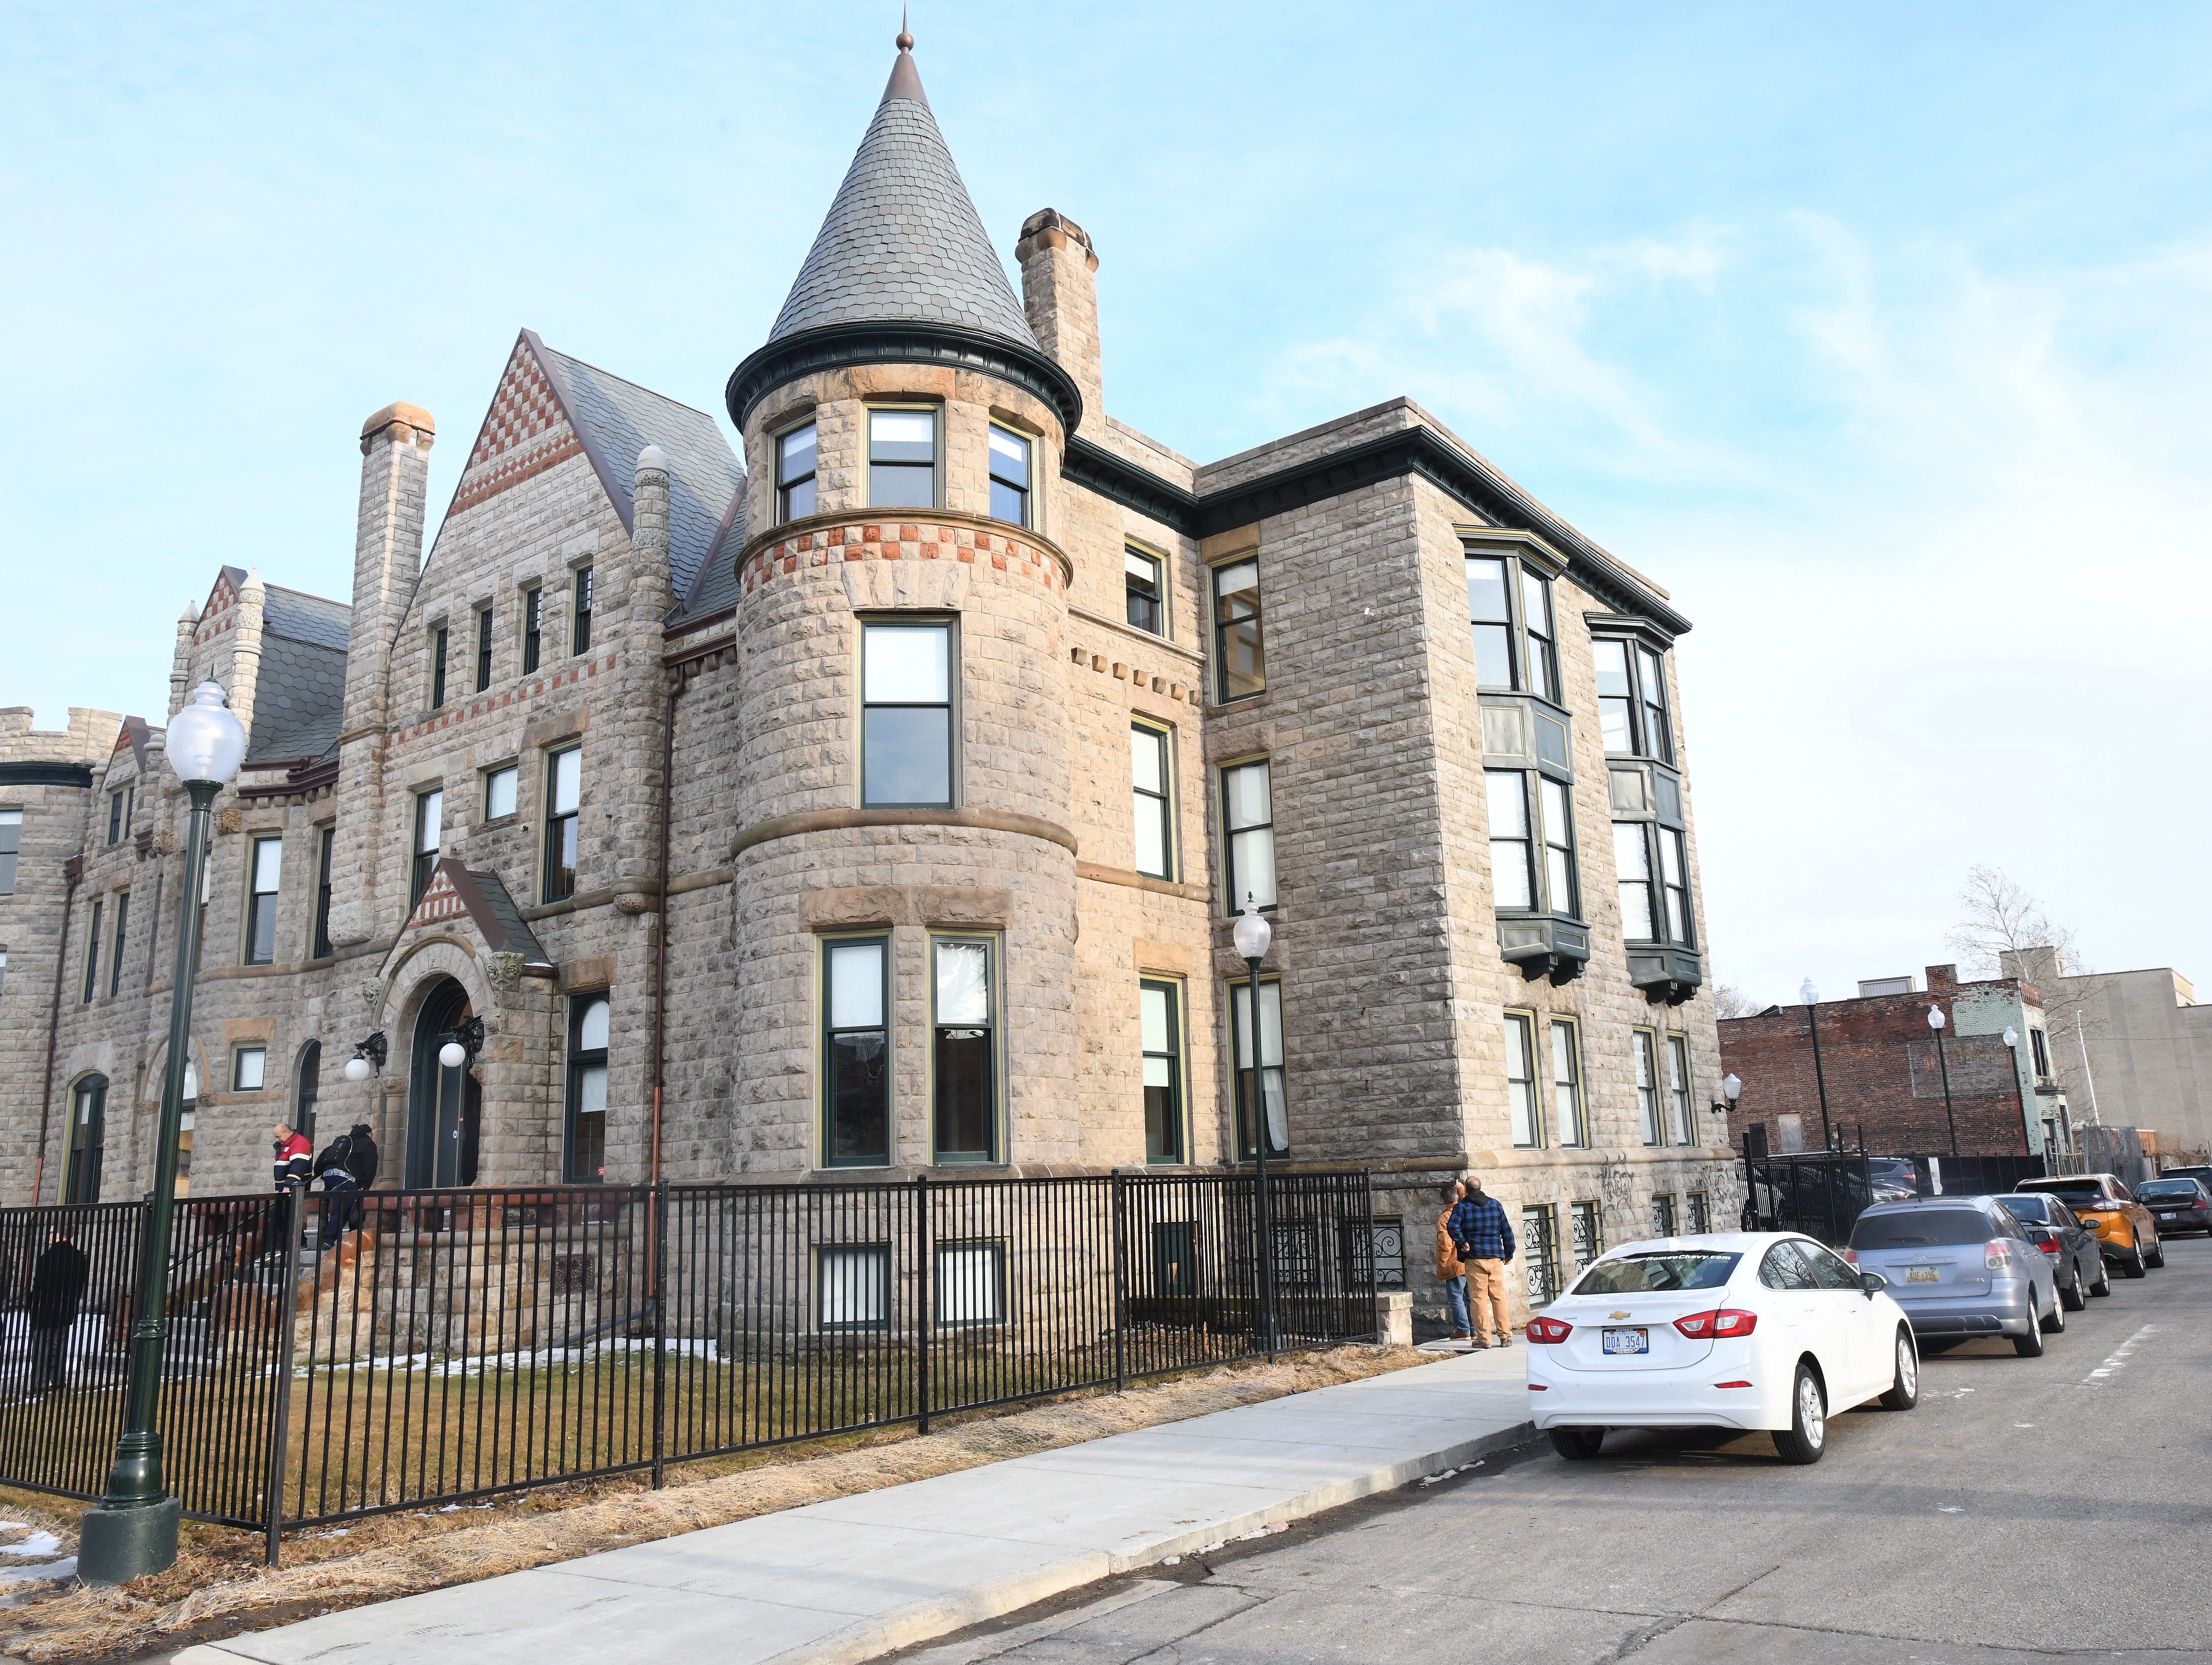 Guests tour historic Scott Mansion which has been renovated into market-rate rental apartments in the Cass Corridor.